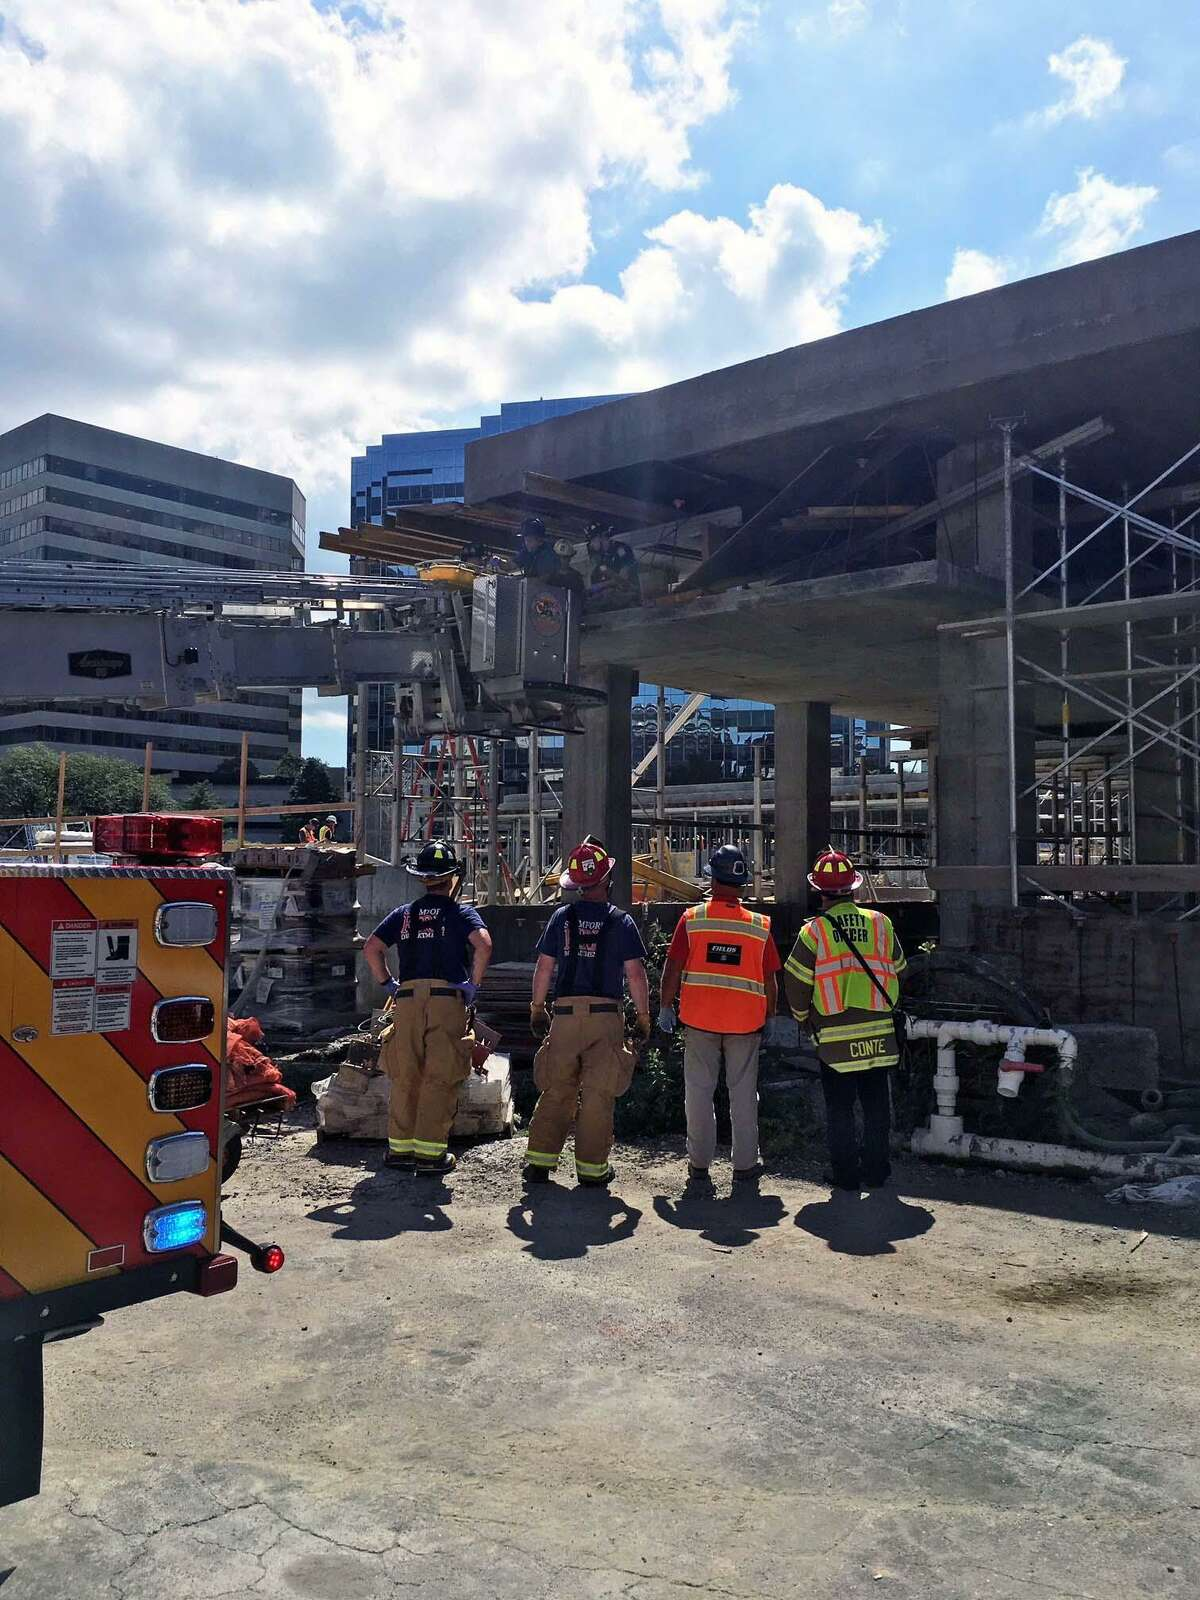 Stamford Fire Capt. Philip Hayes said the the incident happened around 11 a.m. on the second floor of the property under construction at 1 Greyrock Place in Stamford, Conn., on Aug. 30, 2018. Stamford fire units and emergency medical service personnel responded to the area.